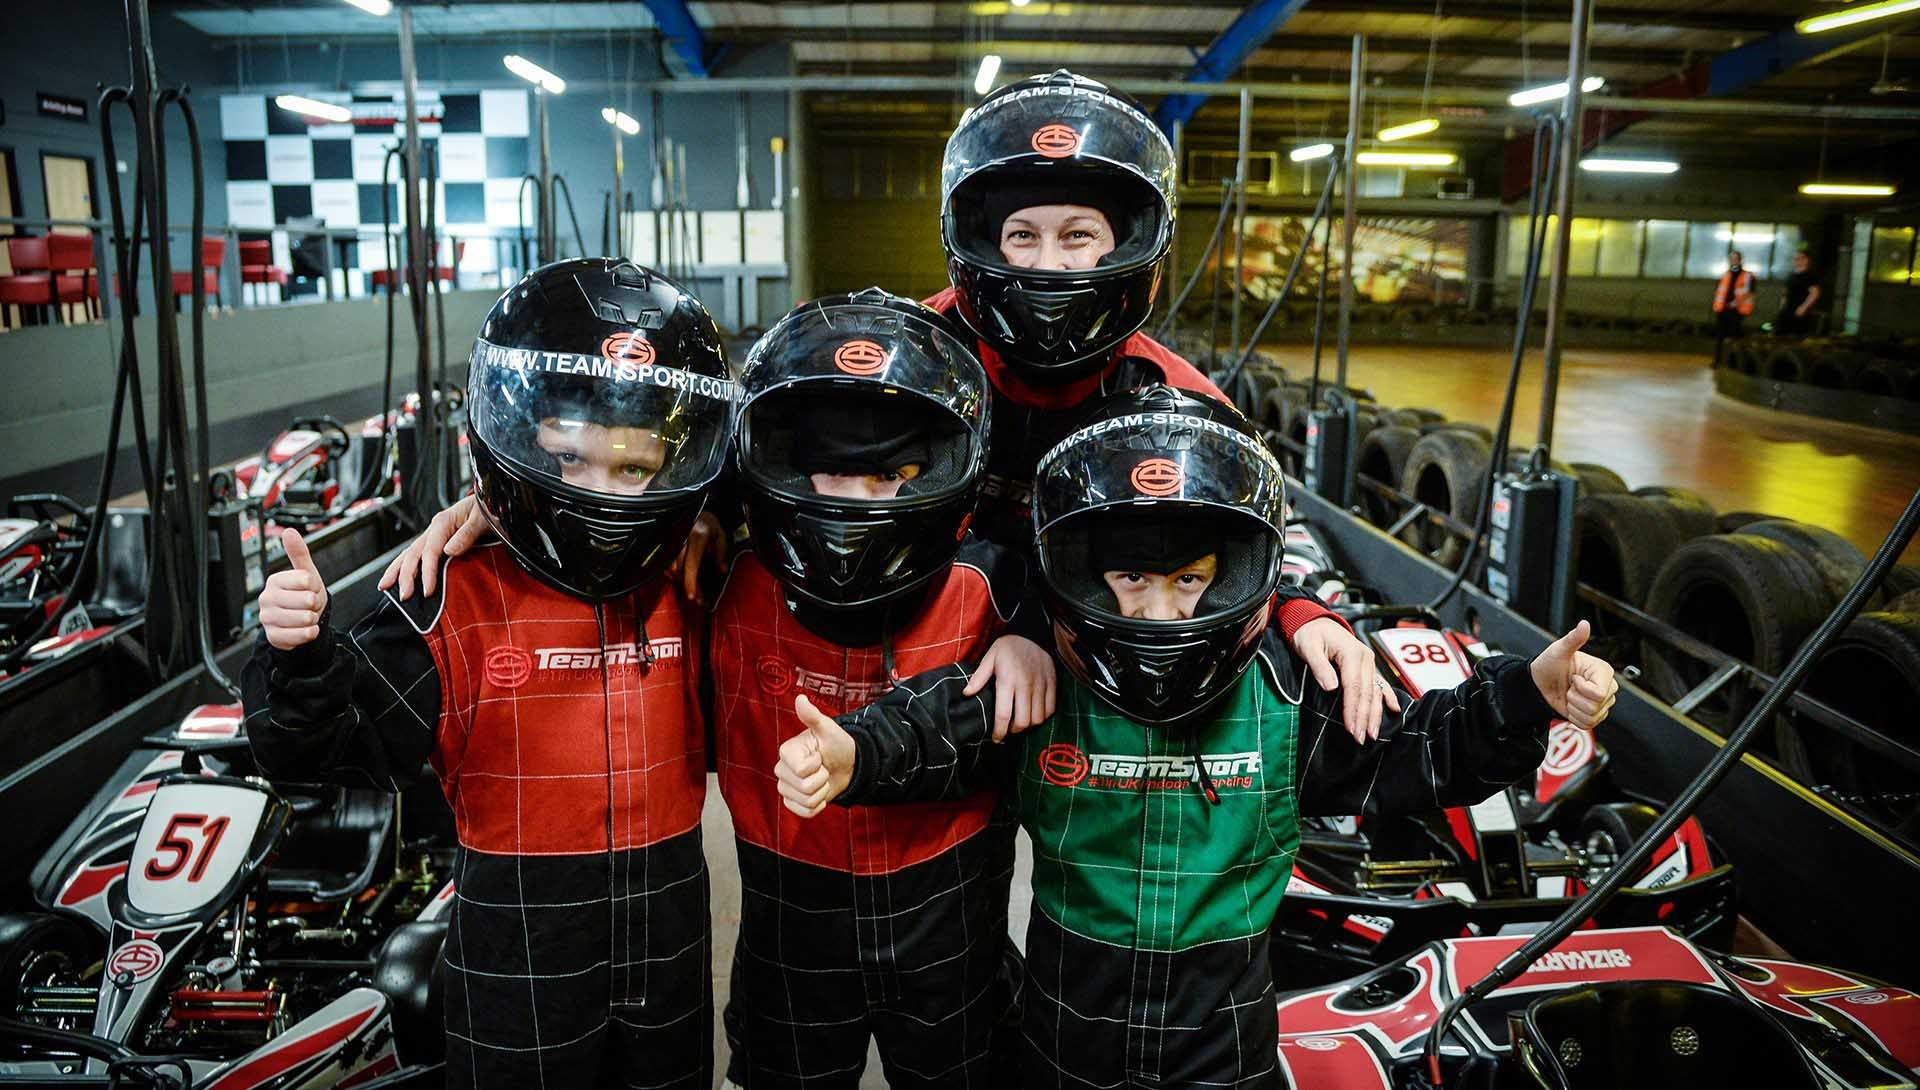 Kids & Family Go Karting